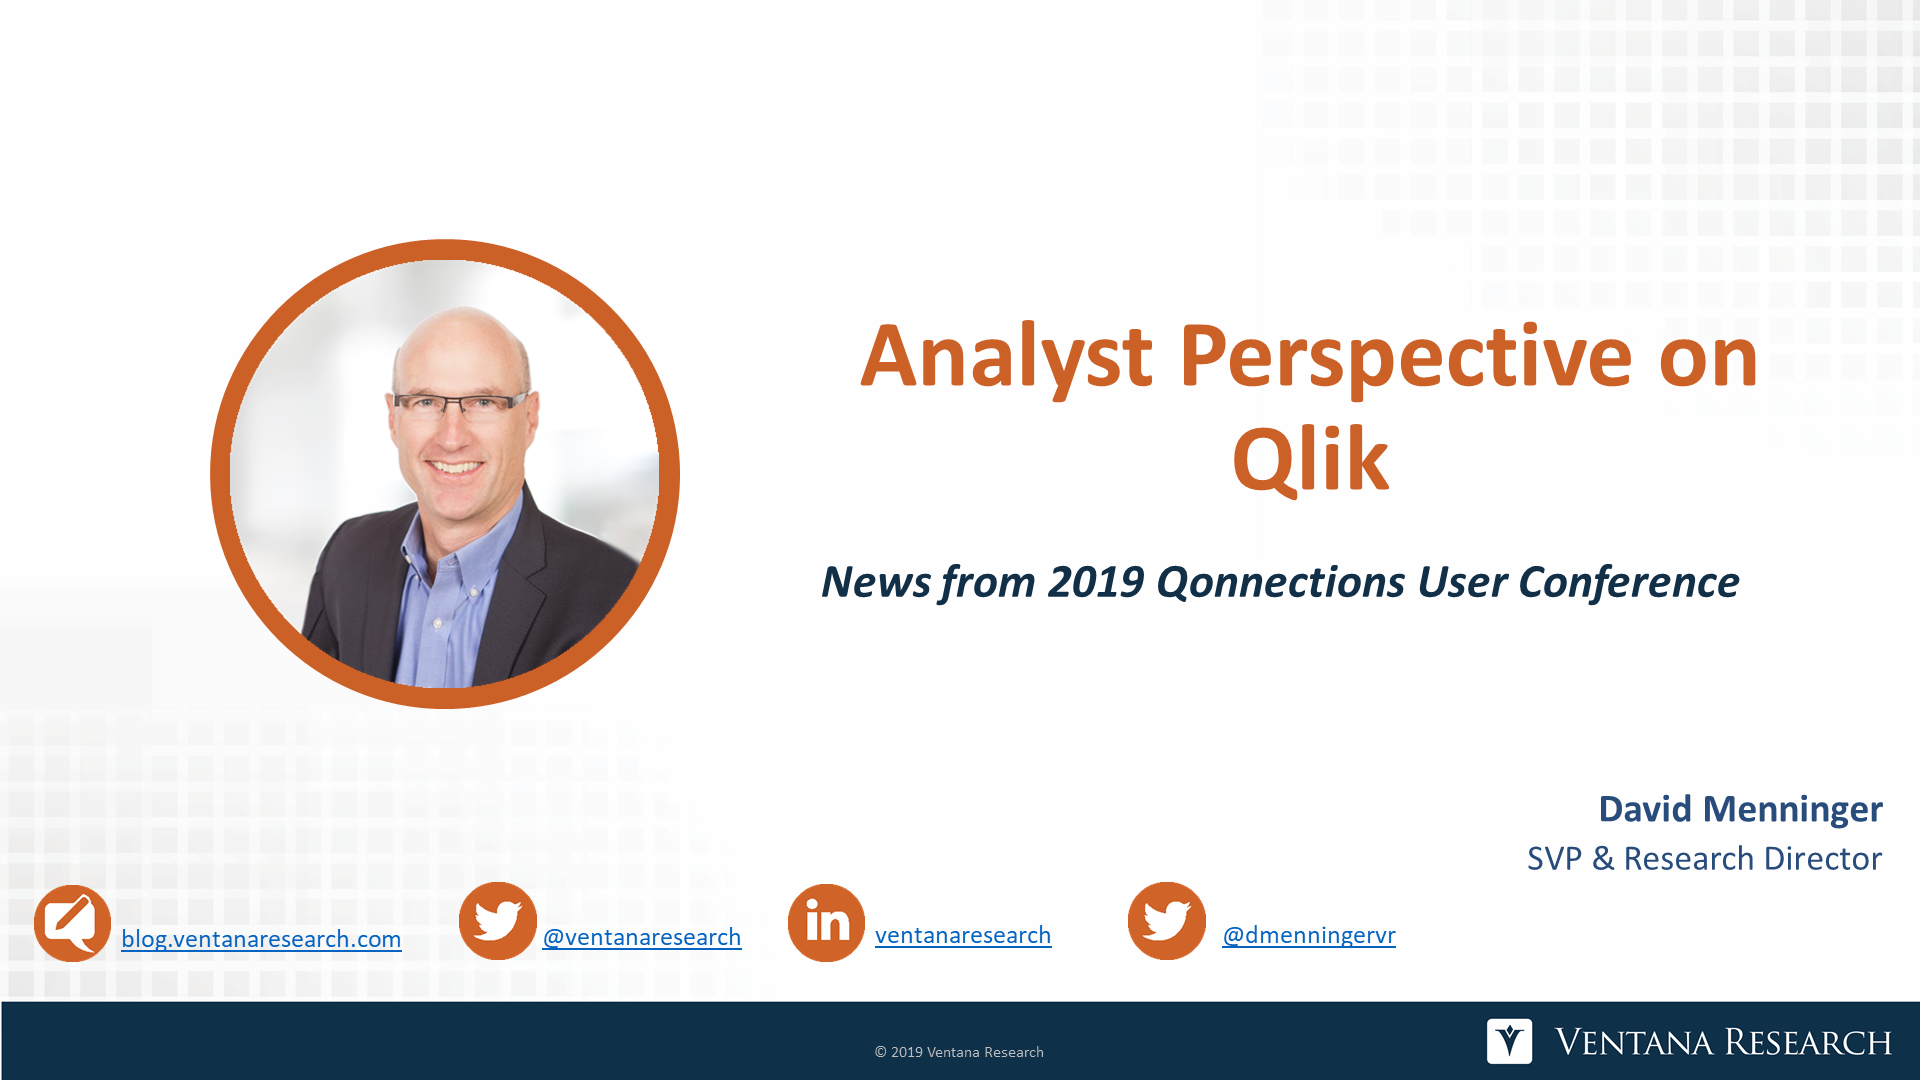 Ventana_Research-David_Menninger-Qlink_Qonnections_2019-Analyst_Perspective